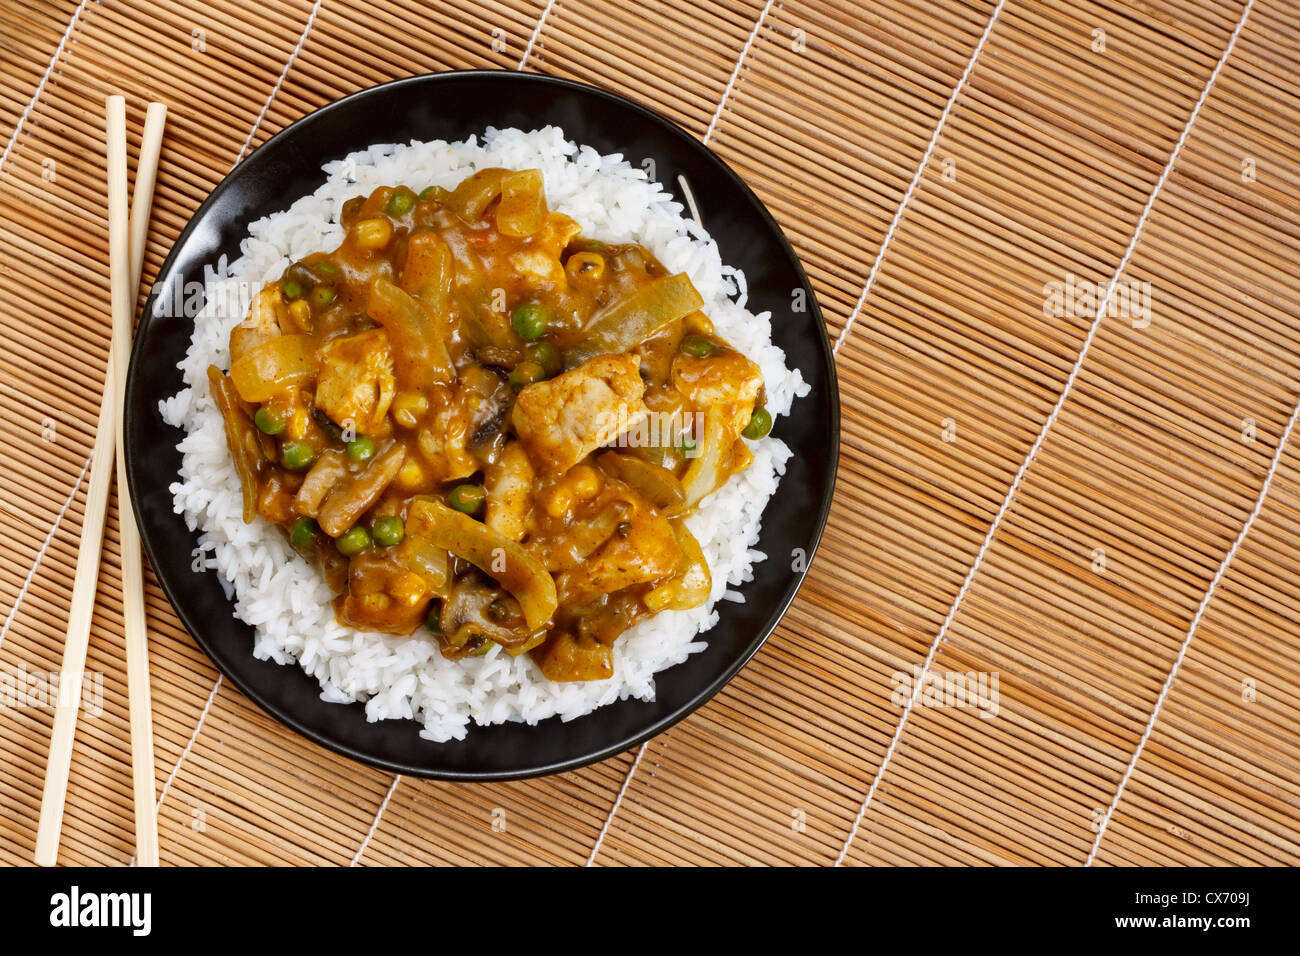 Chicken Curry a popular asian dish available at chinese take aways - Stock Image